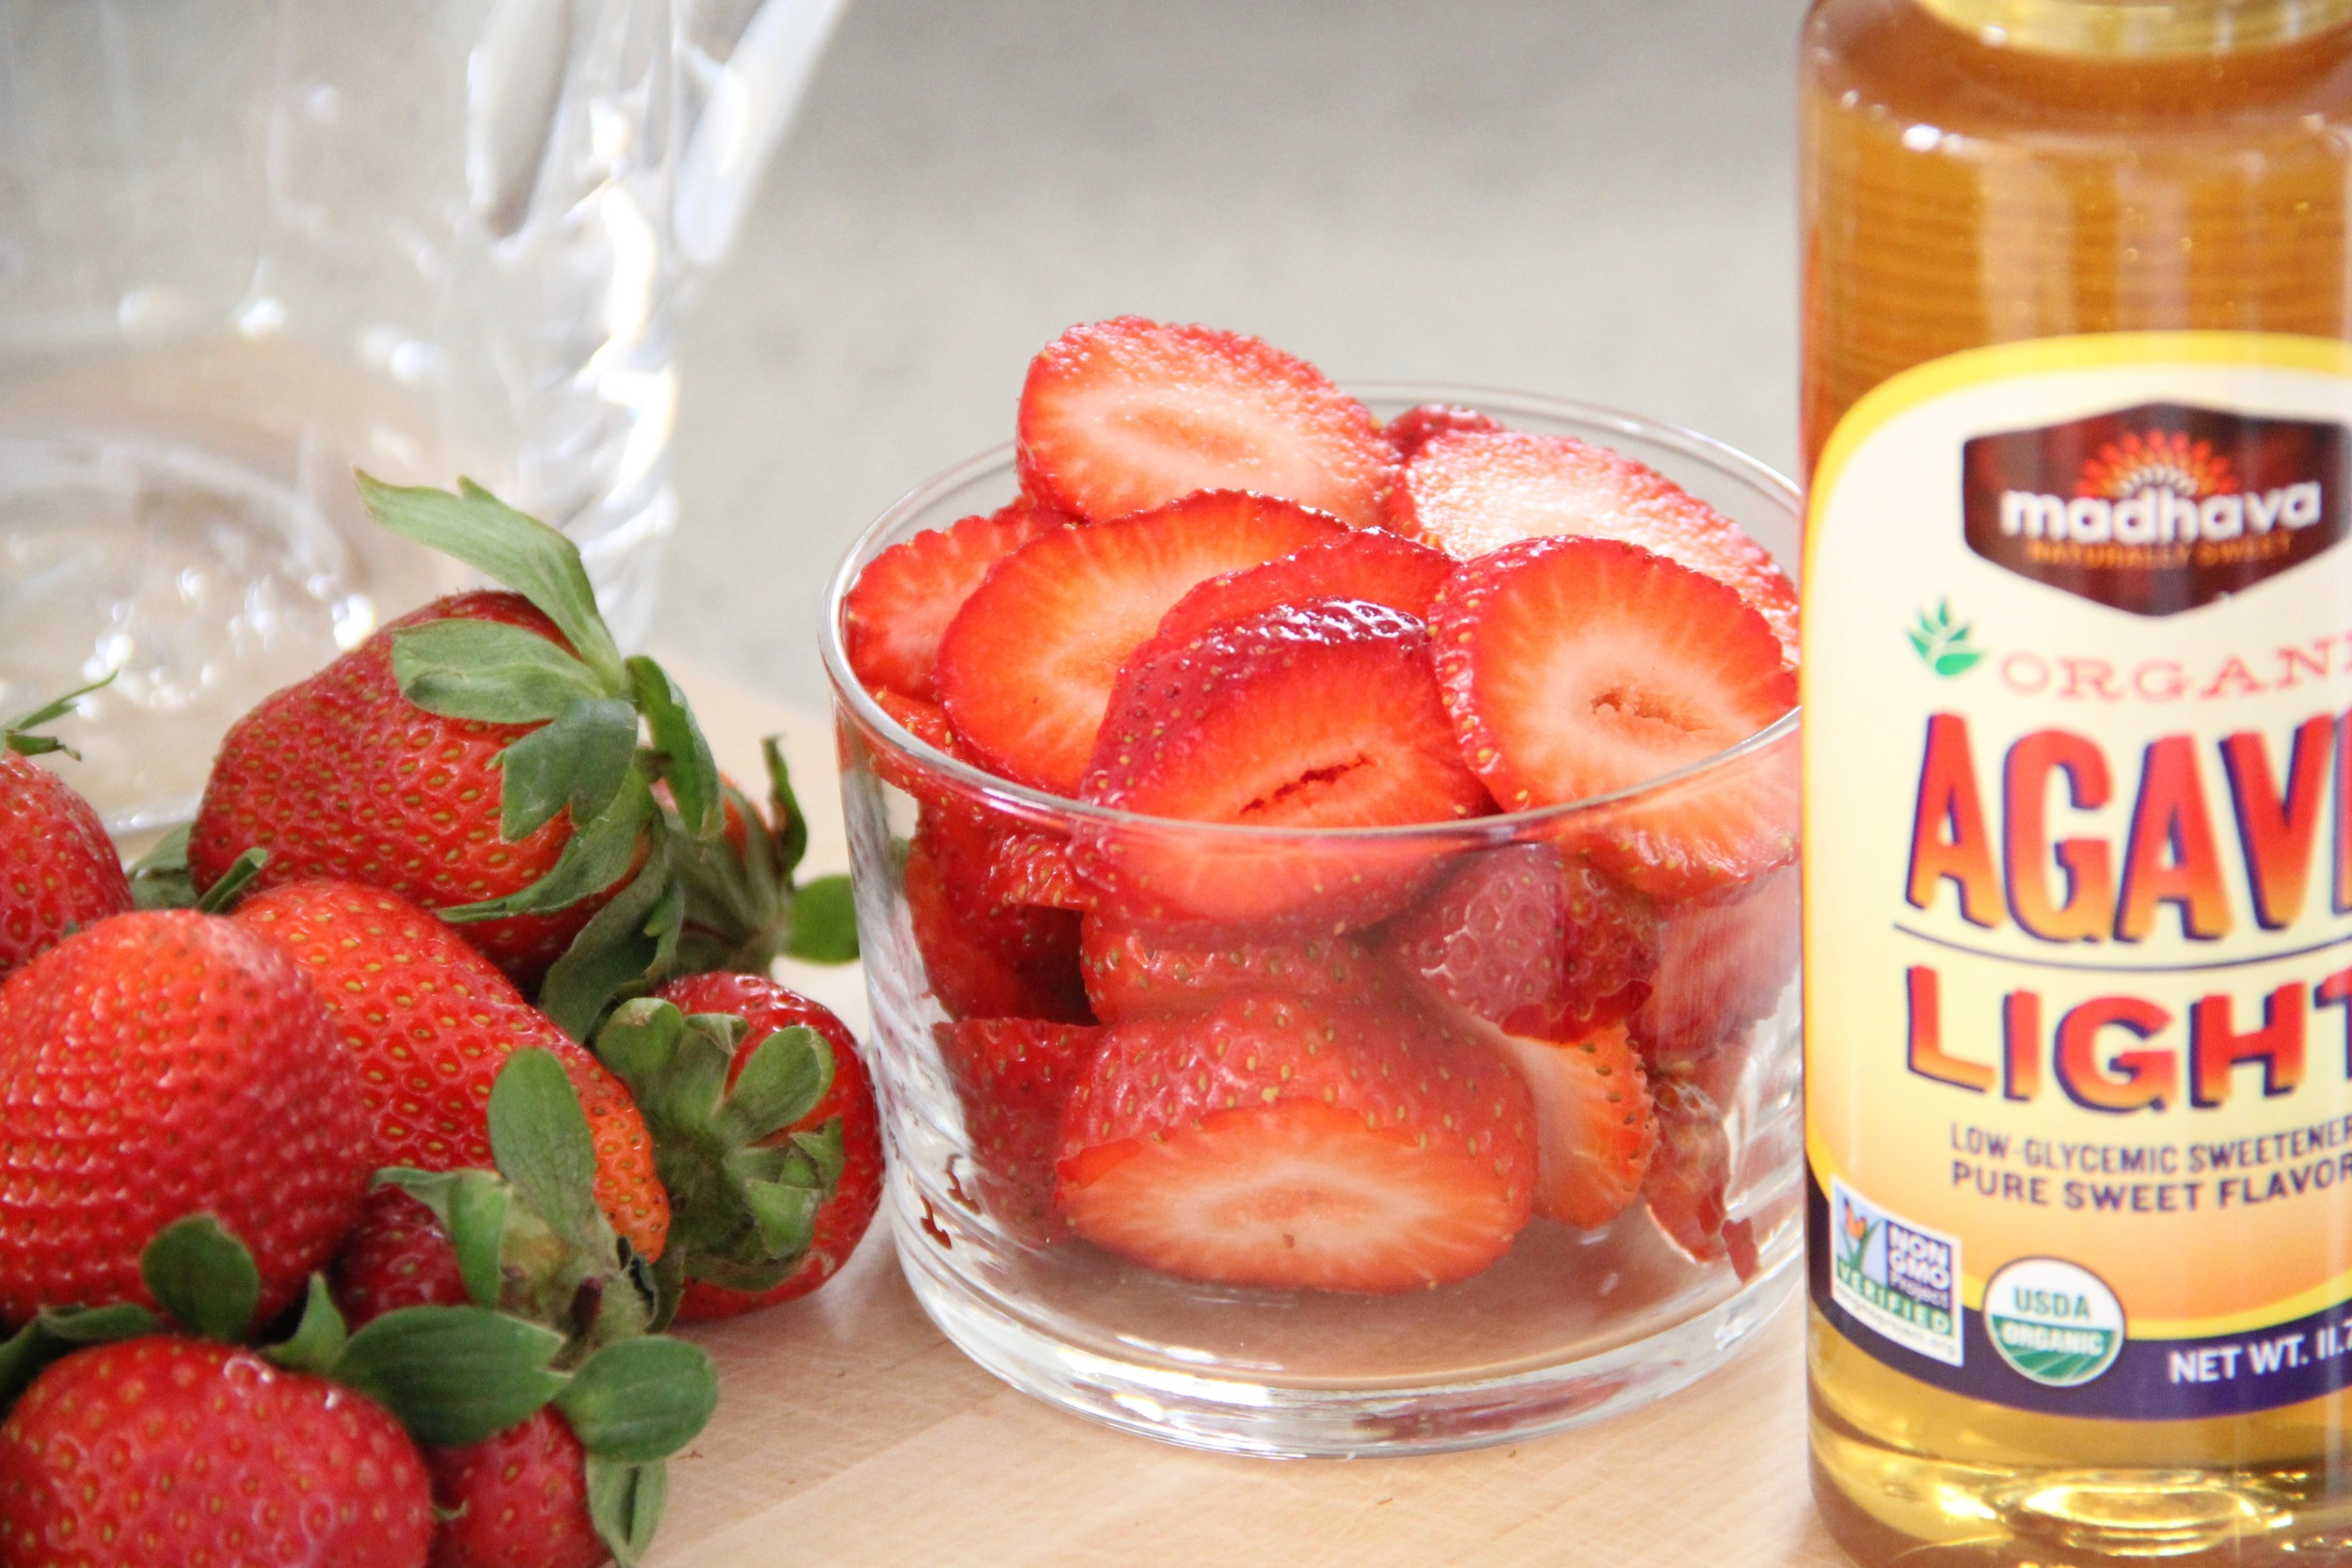 Strawberries and Agave.jpg